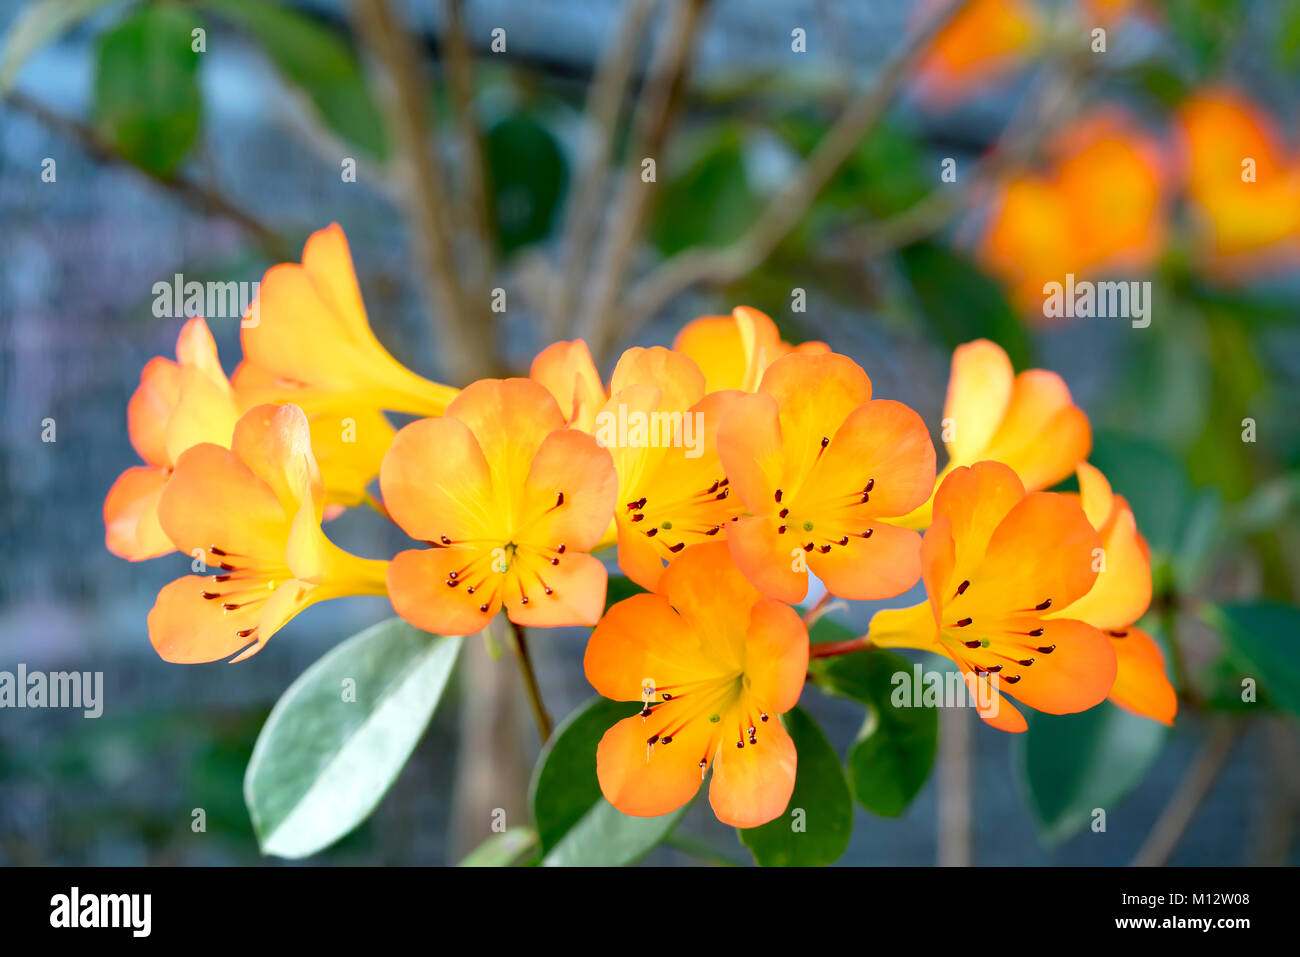 Multi colored flowers beautiful bouquet colored stock photos multi azalea flowers blooming with yellow color mixed with black notes from the pistil affectionate nature lover mightylinksfo